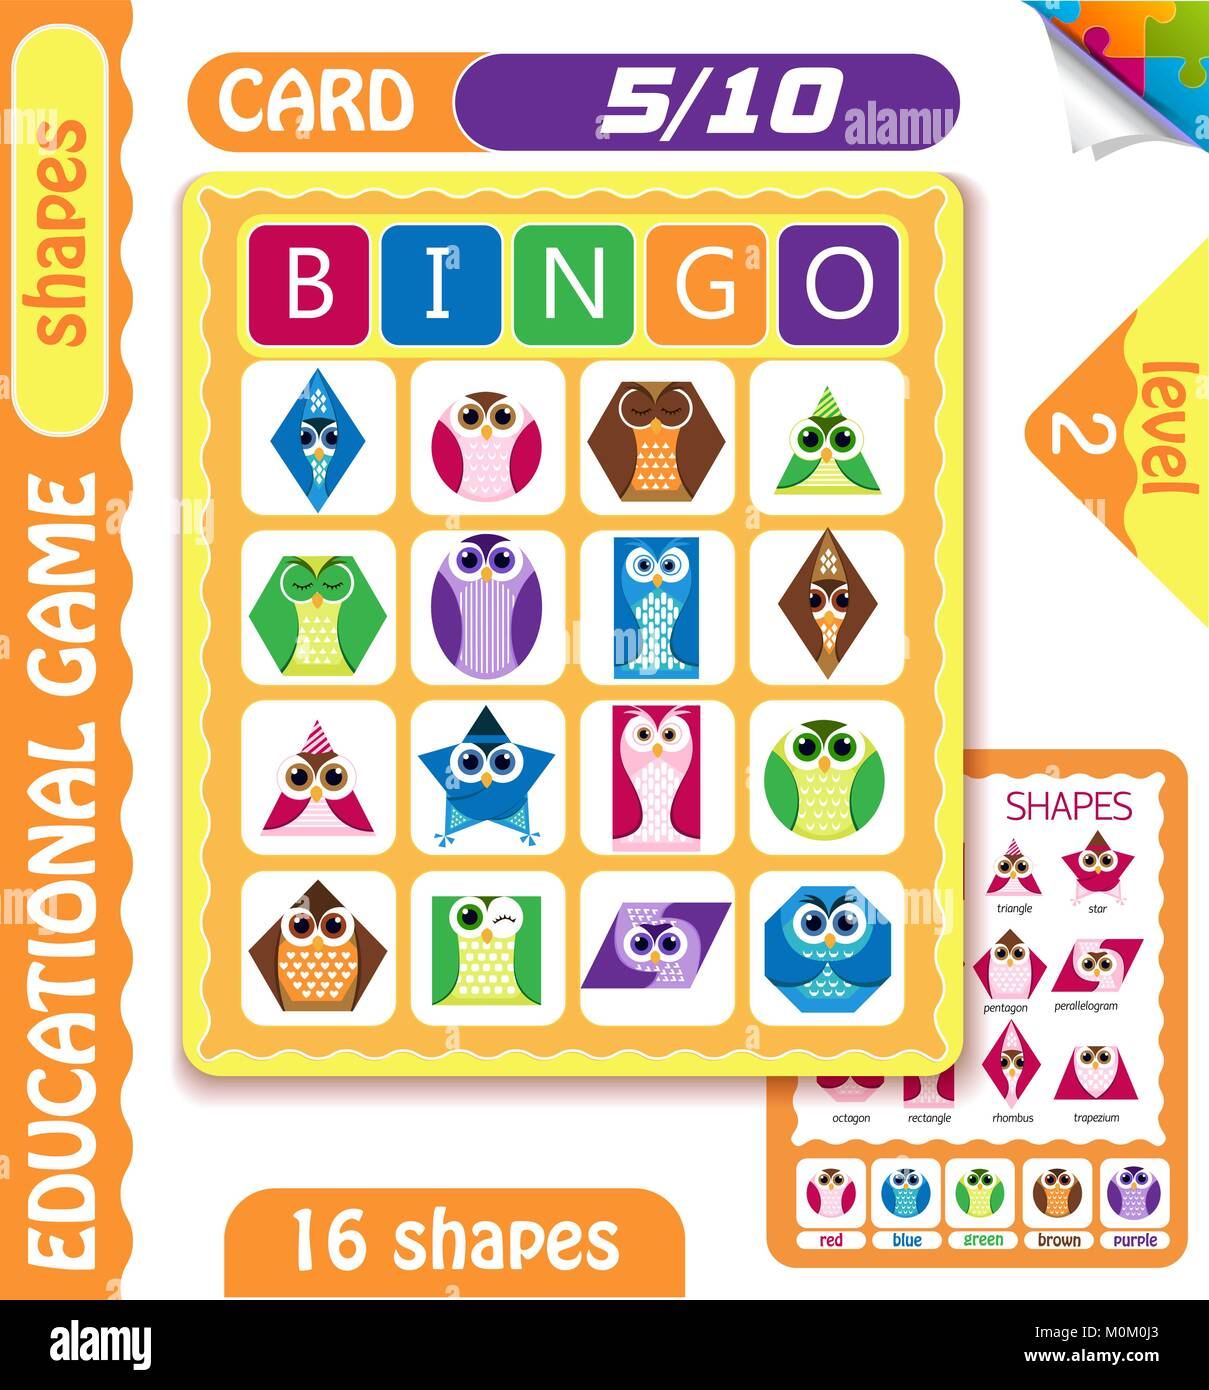 photo about Shape Bingo Printable identified as insightful bingo recreation for preschool young children with designs inside the